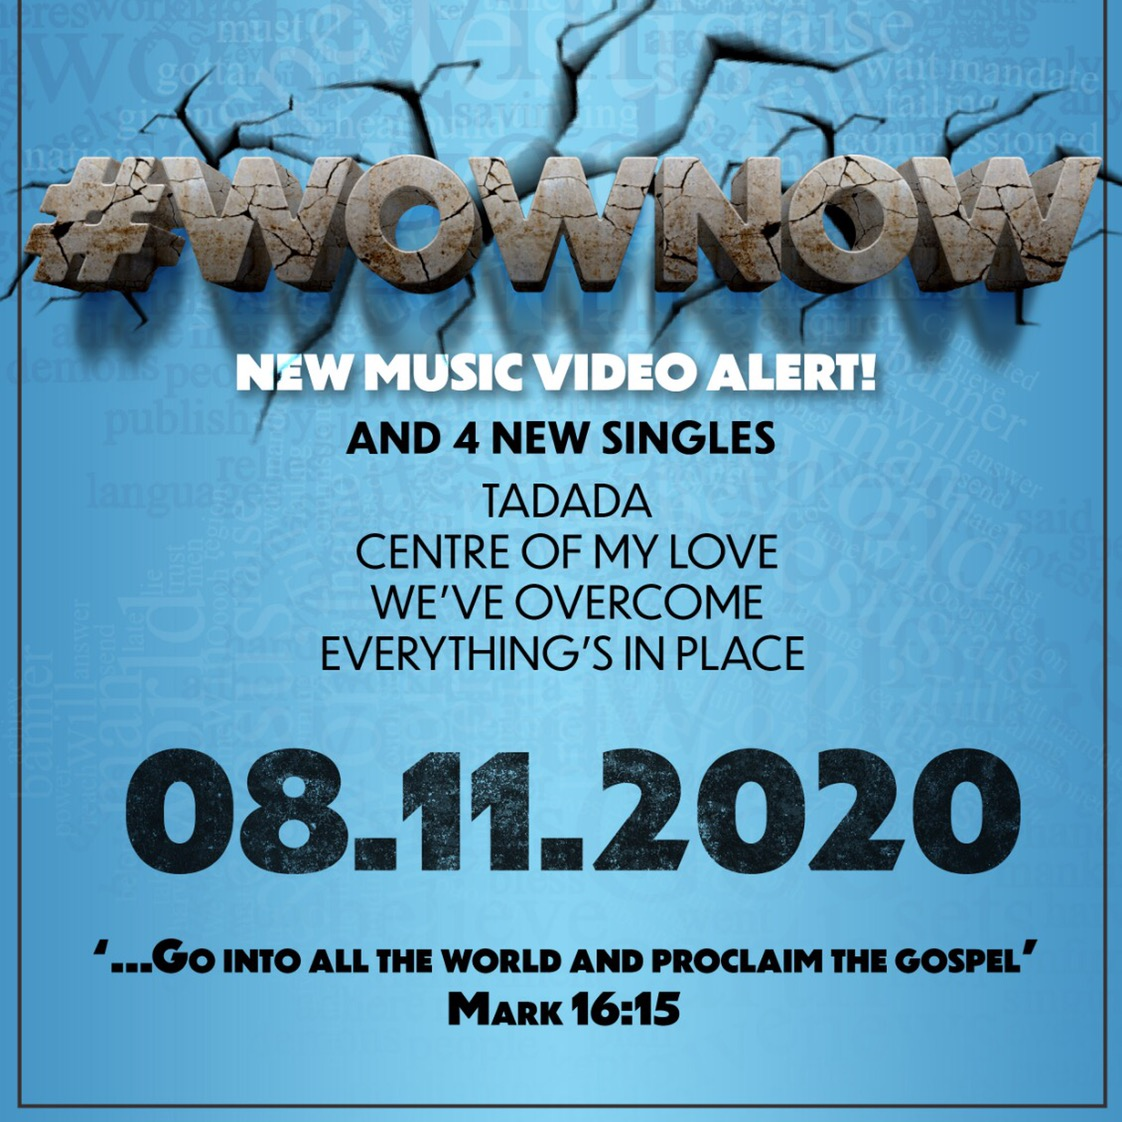 🔥 #WOWNOW - ARE YOU